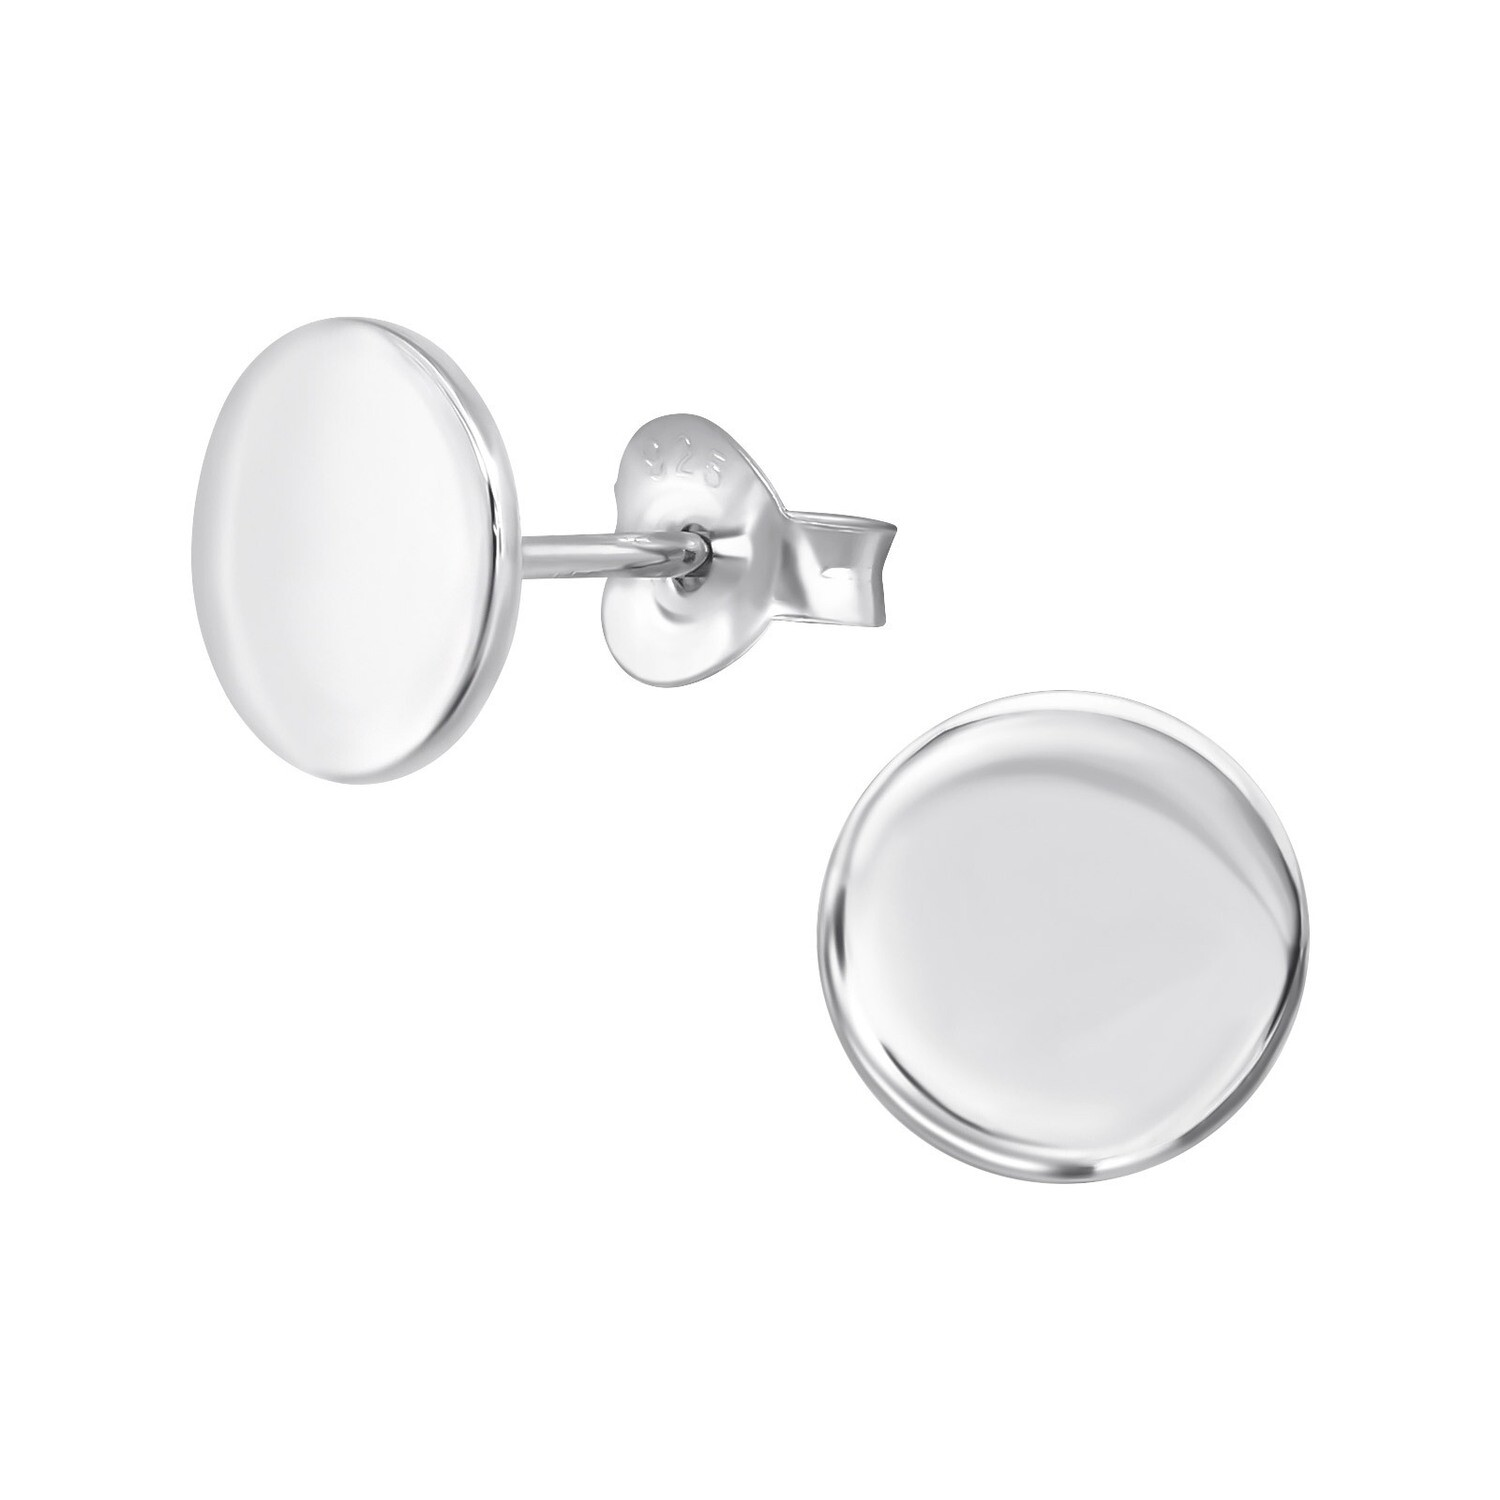 P39-54 Sterling Silver Circle Posts